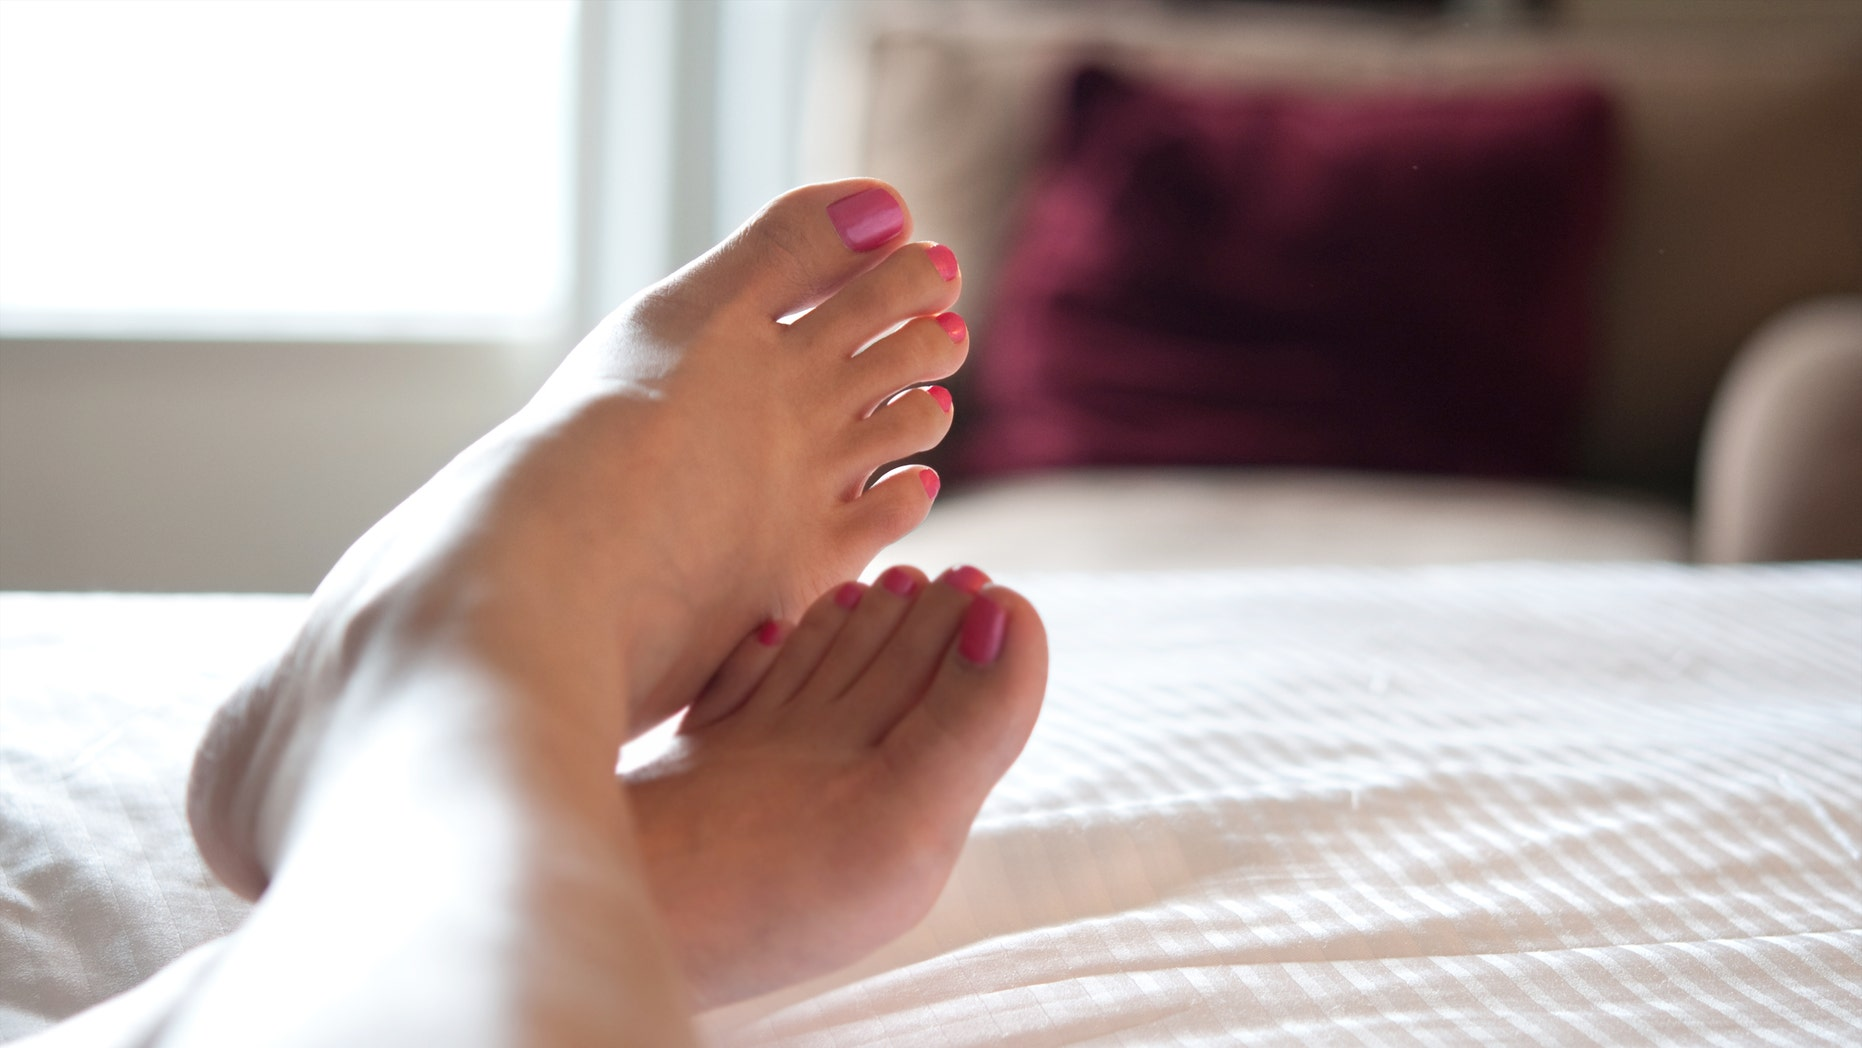 """""""Close up of a woman's feet with pink pedicured toe nails. She's sitting on the bed with her legs crossed at the ankles, feeling rejuvenated, pampered and relaxed in a hotel room. Shallow depth of field.Related collections:"""""""